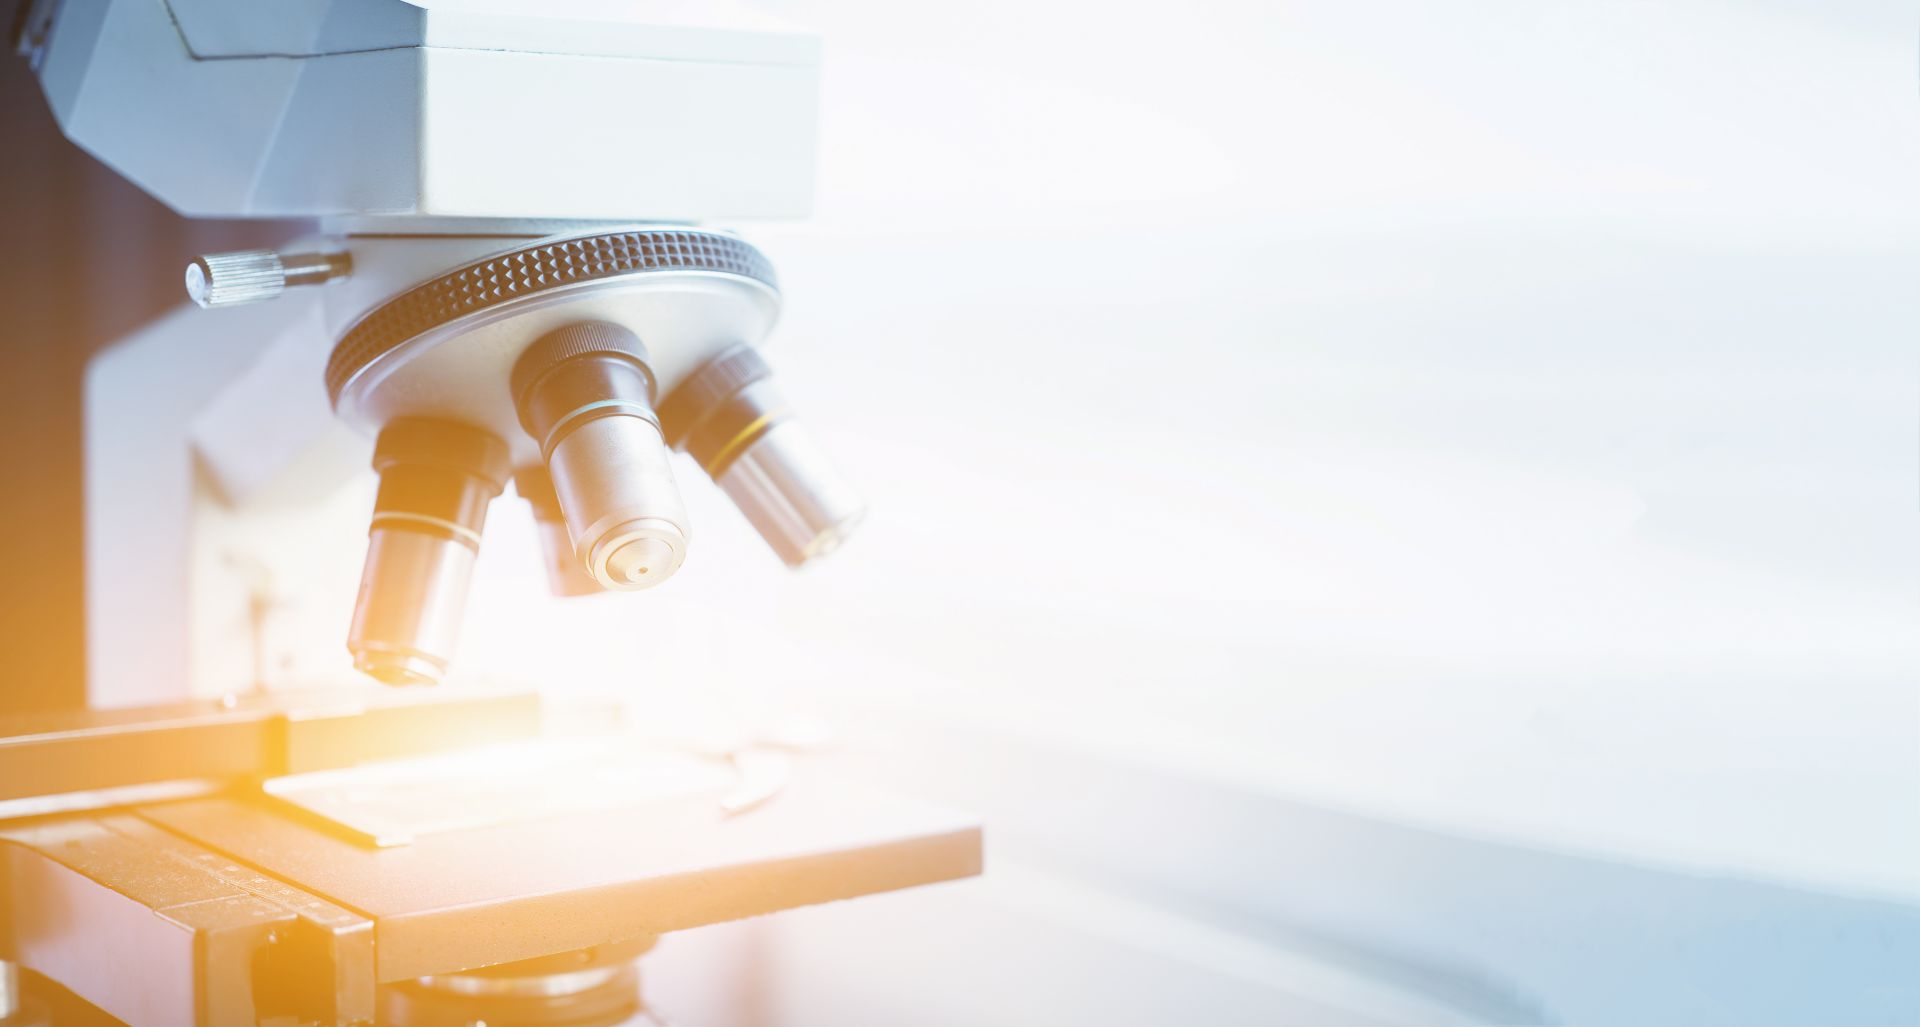 AbbVie Receives European Commission Approval of VENCLYXTO® (venetoclax) Plus Rituximab for the Treatment of Patients with Chronic Lymphocytic Leukemia Who Have Received at Least One Prior Therapy